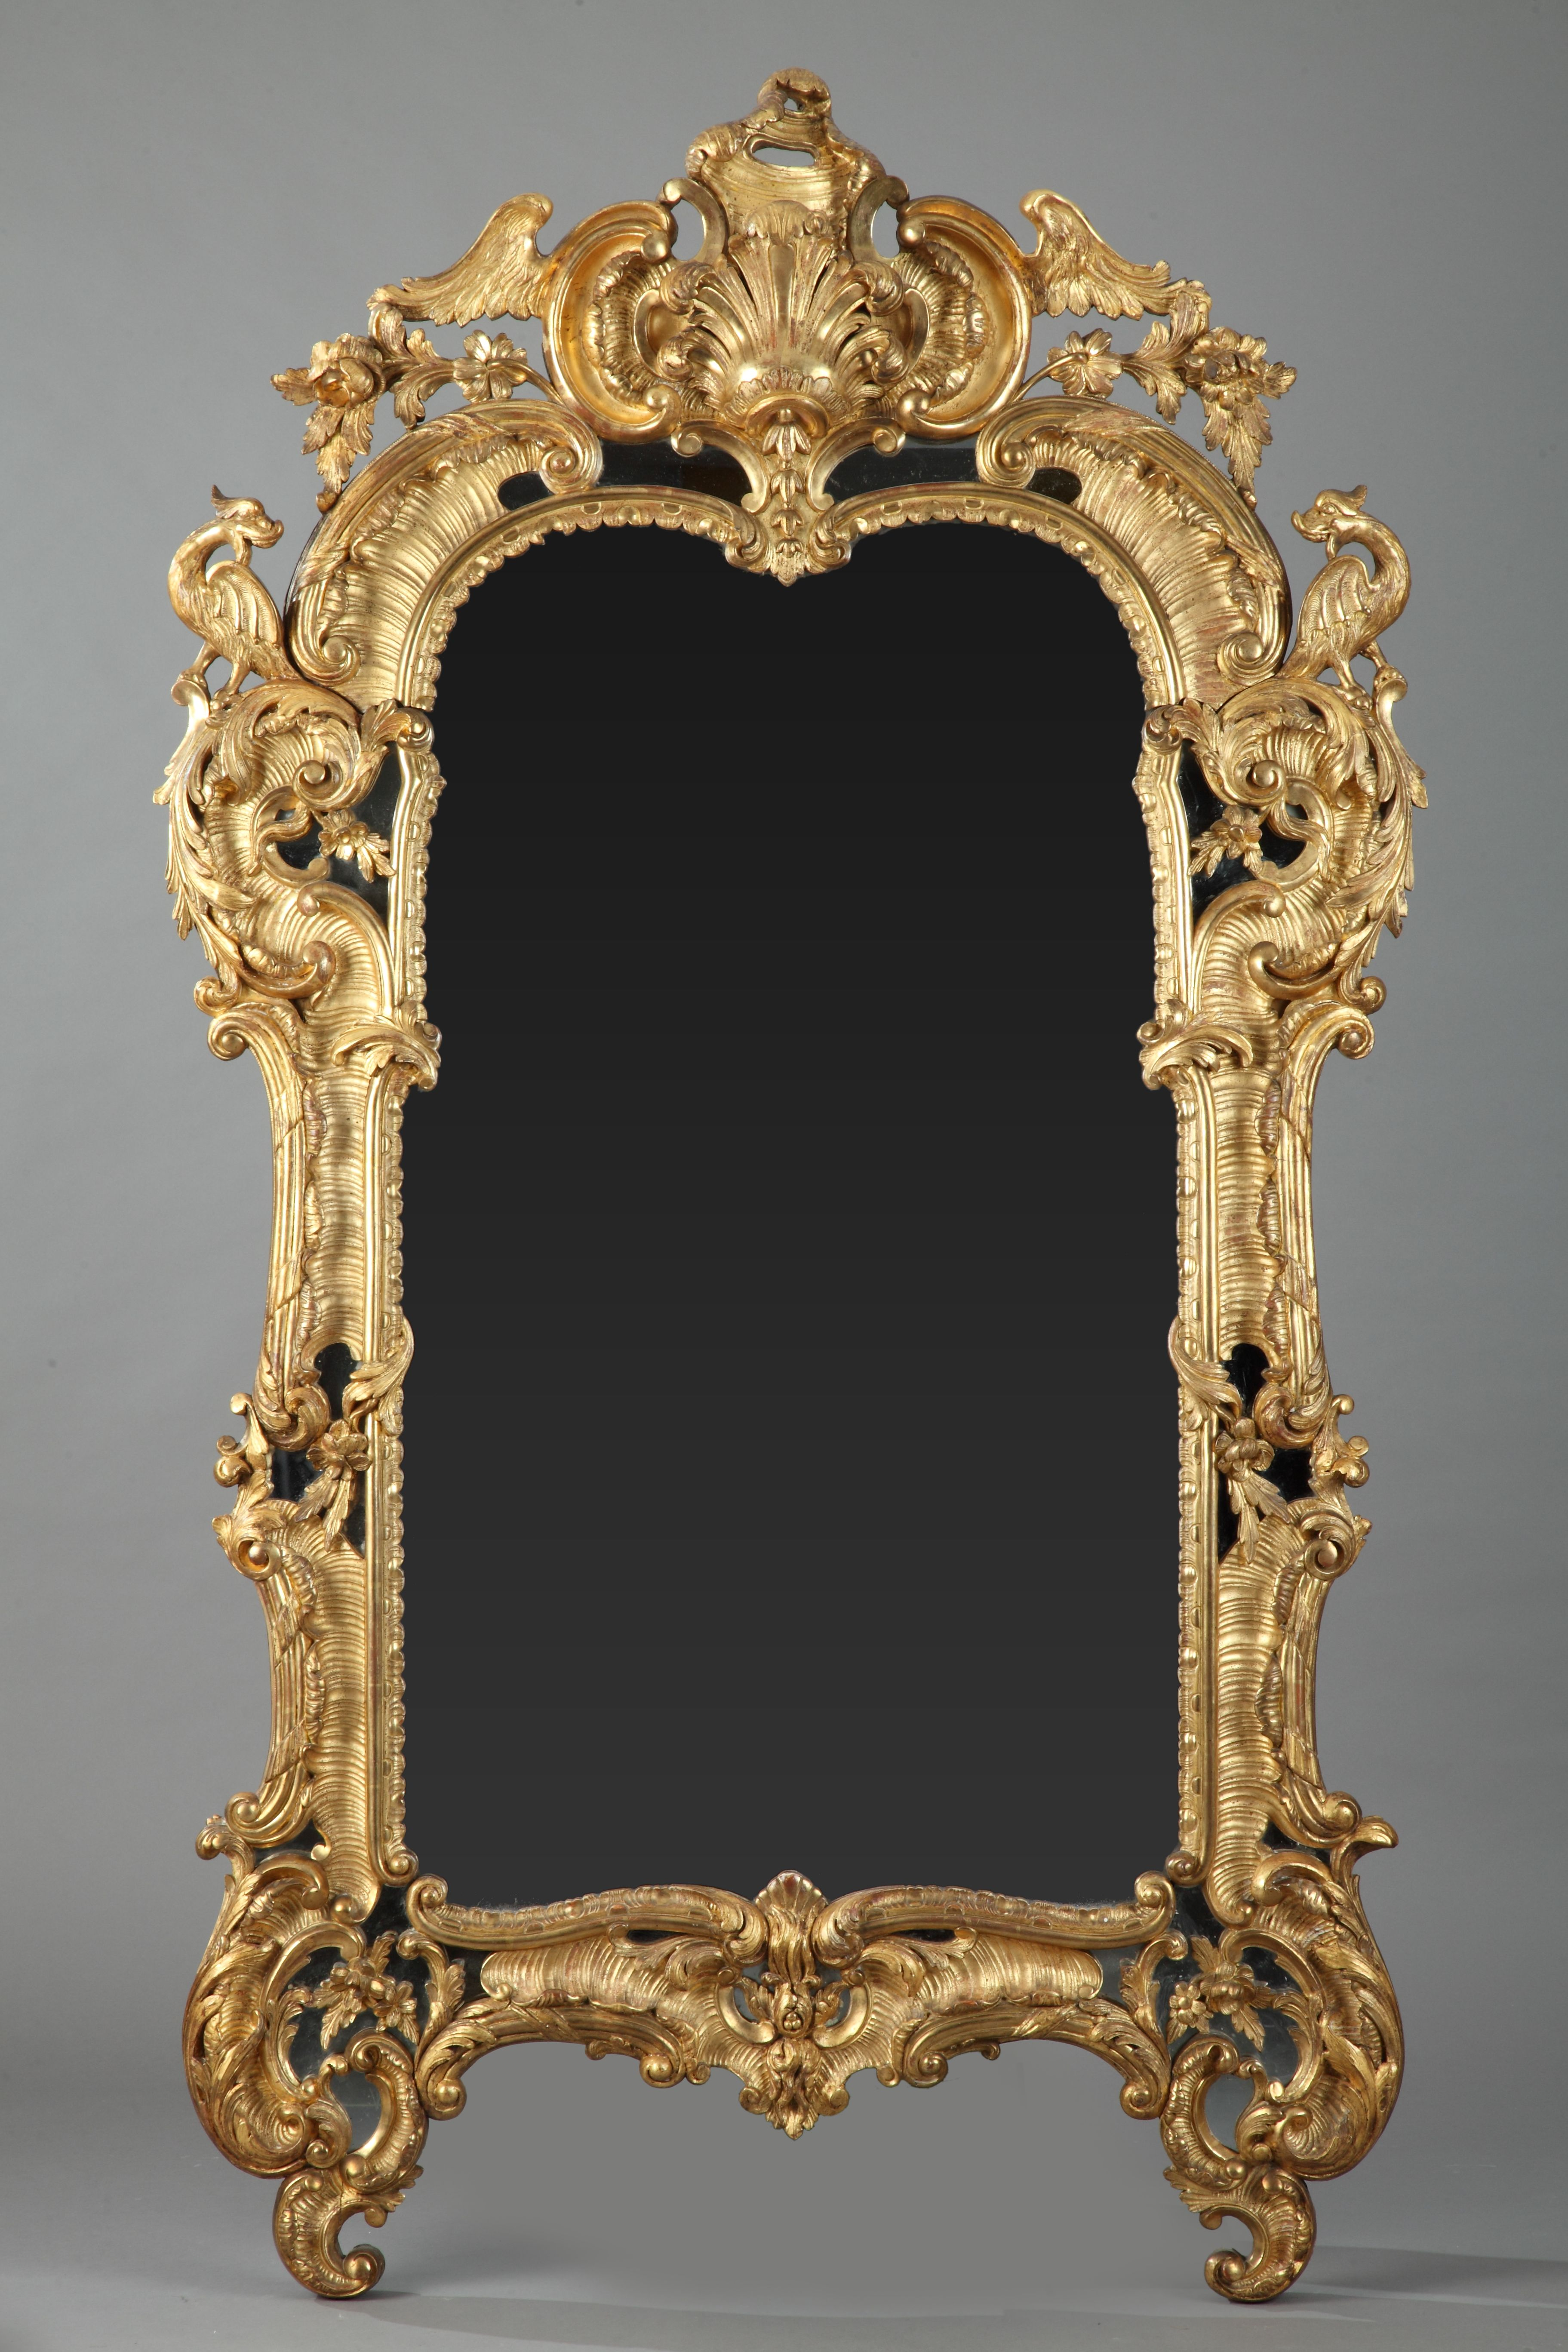 miroir en bois dor de style louis xv poque napol on iii estilo luis xv espejo de madera y. Black Bedroom Furniture Sets. Home Design Ideas